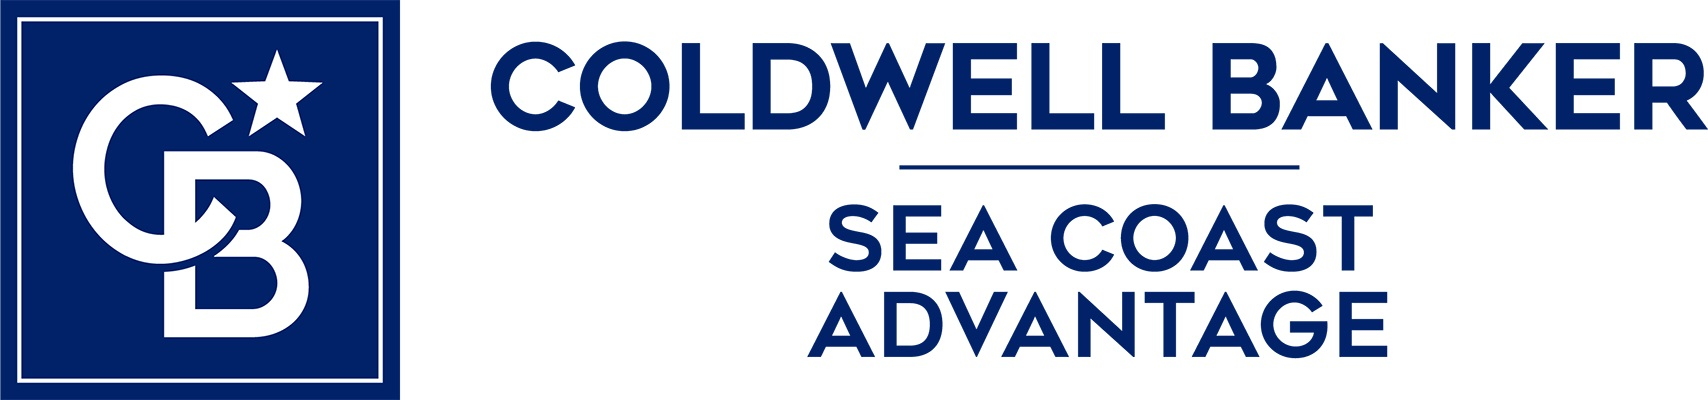 Michelle Powell - Coldwell Banker Sea Coast Advantage Realty